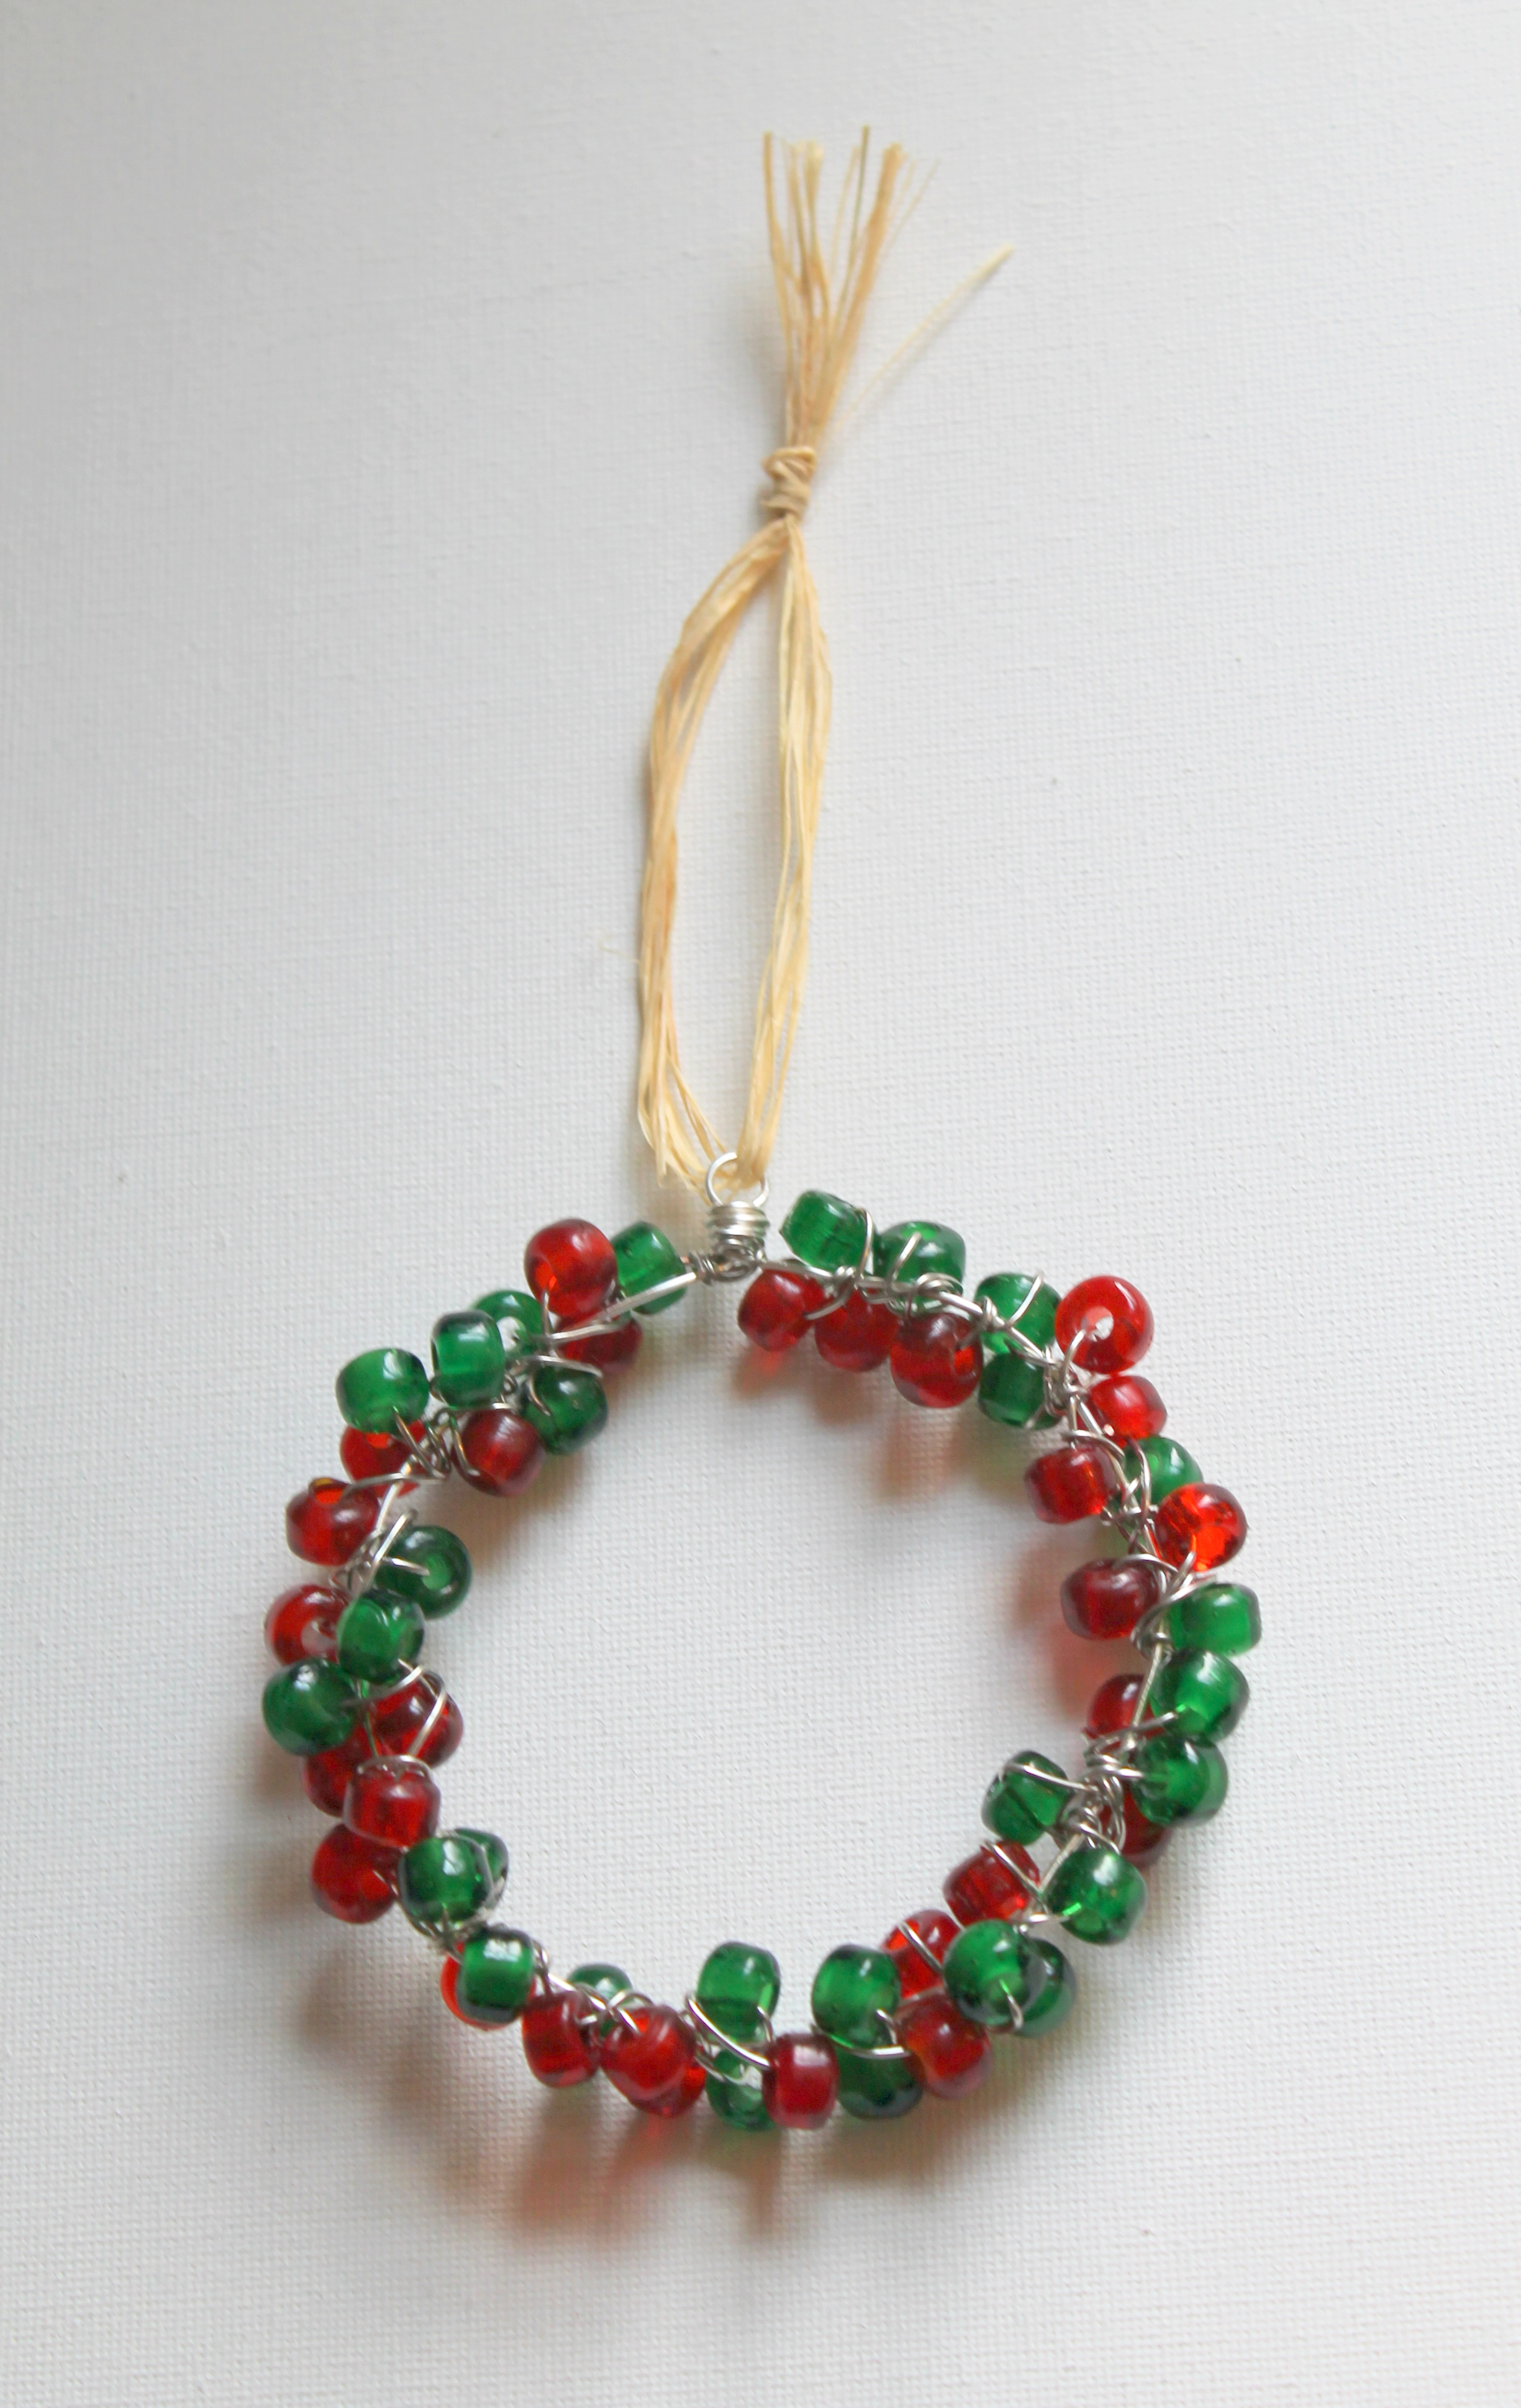 Wire Wrapped Wreath Ornament Tutorial | Emerging Creatively Jewelry ...